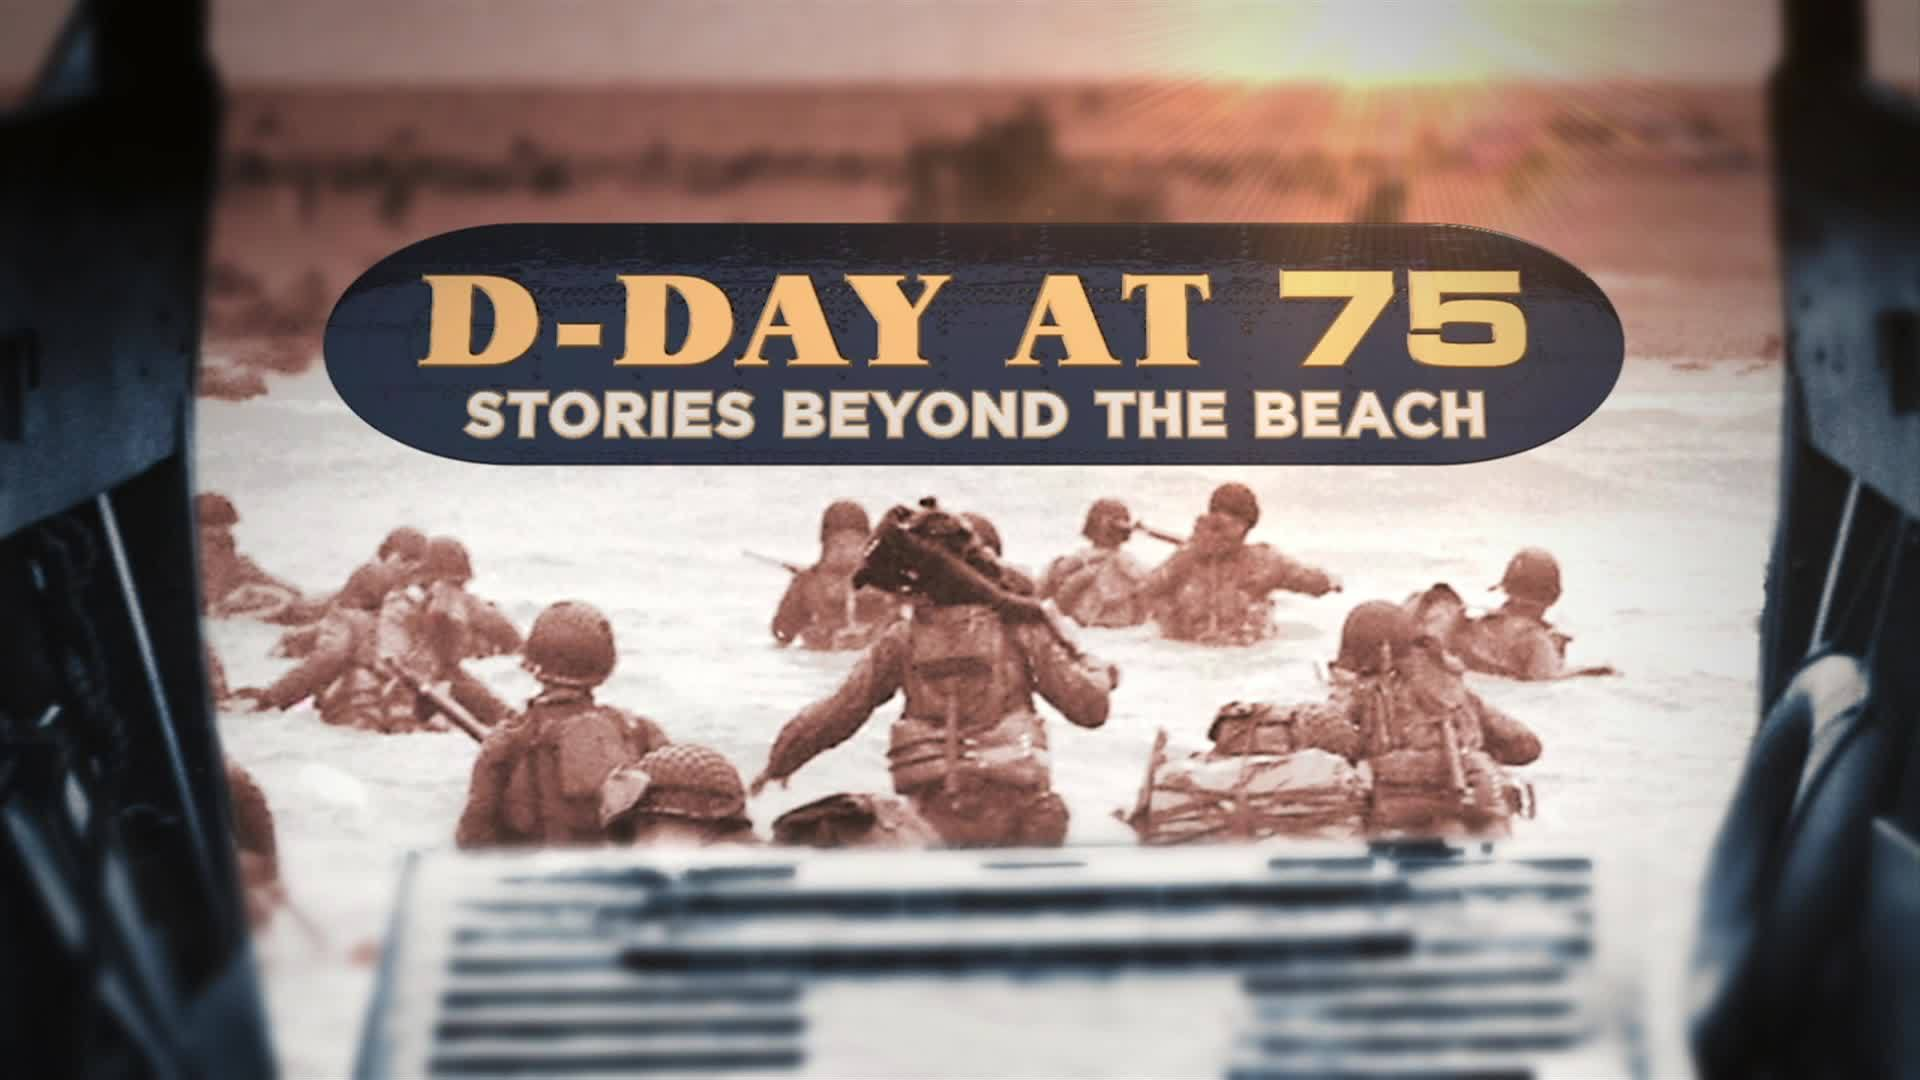 D_Day_at_75__Stories_Beyond_the_Beach_Pa_2_20190611191255